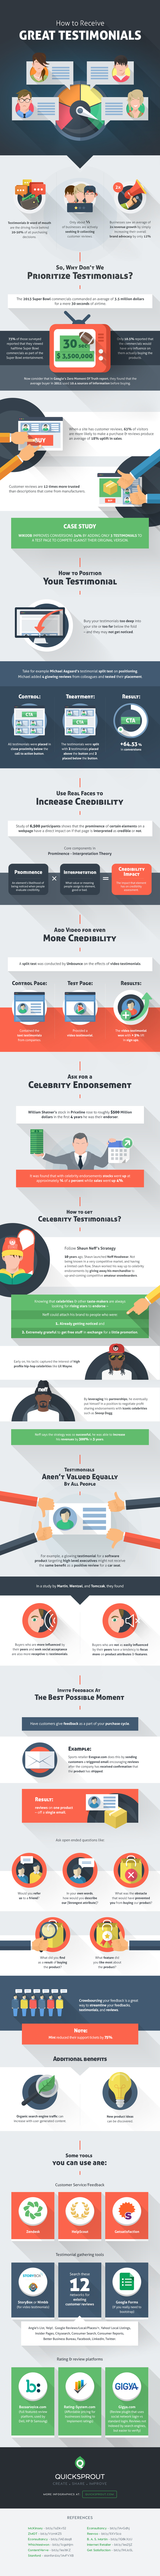 How to Receive Great Testimonials